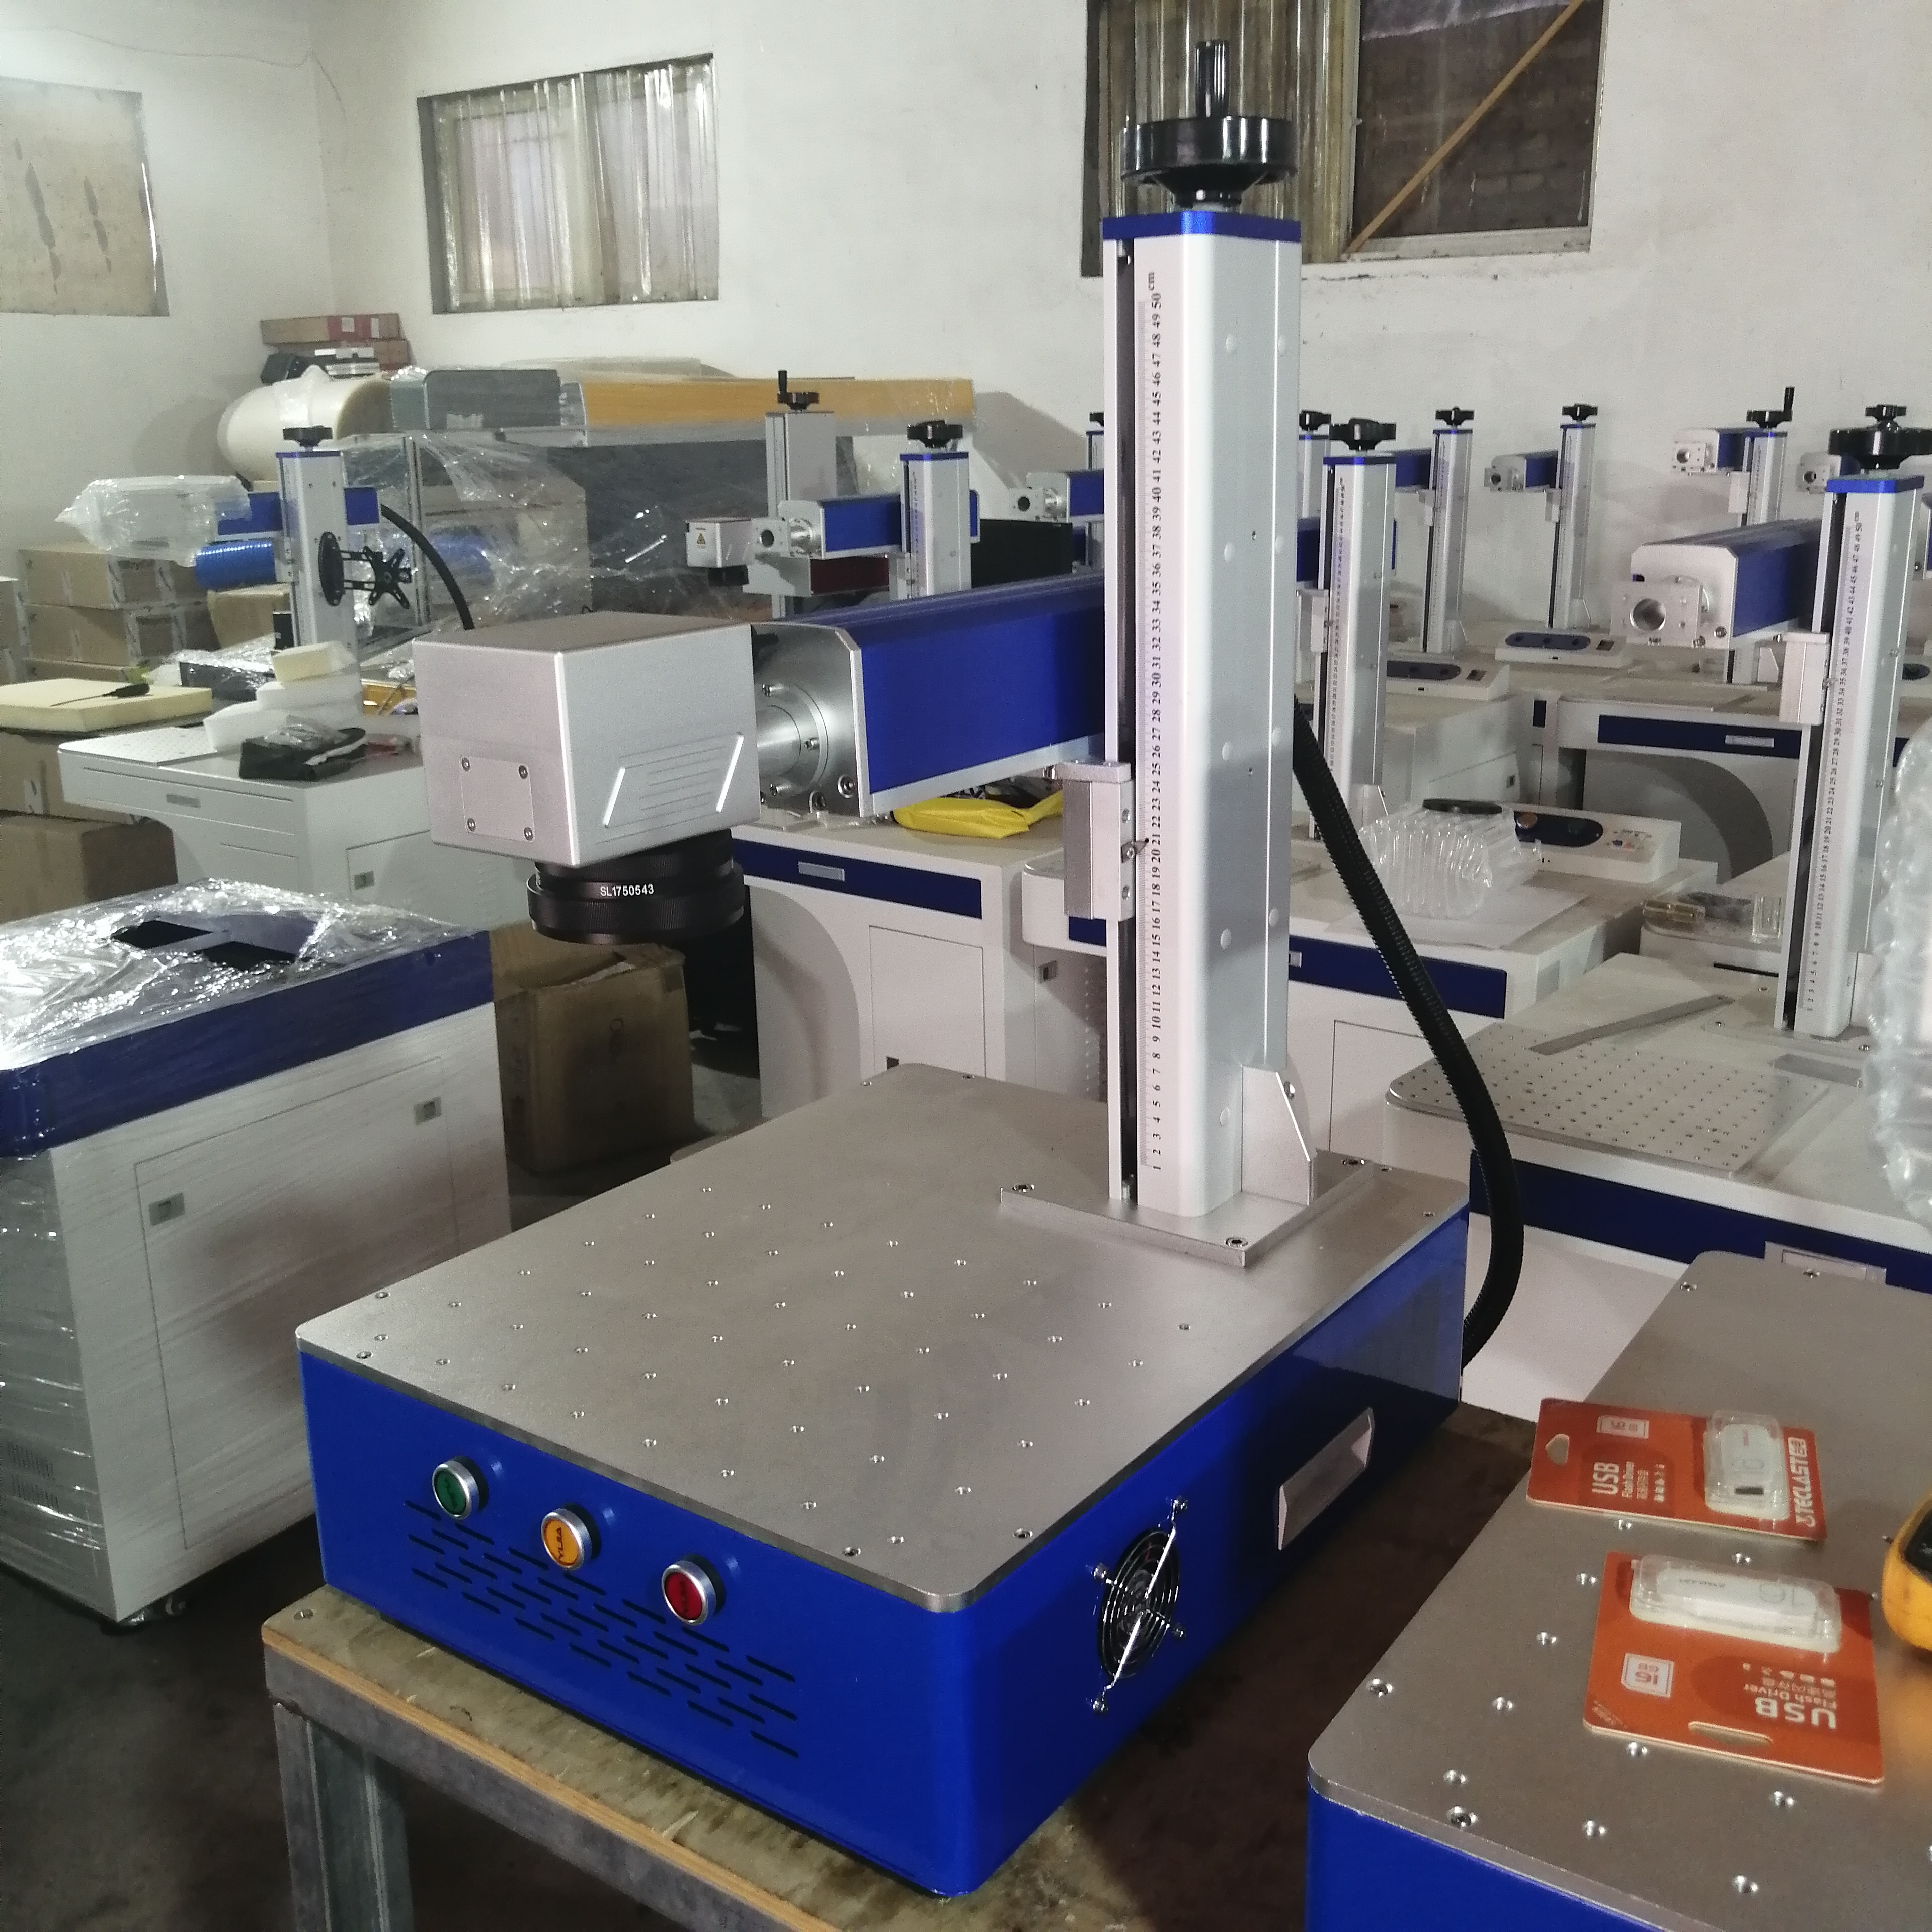 LCSPEAR 50W Fiber Laser Marking Machine With Rotary And Power Cable 3